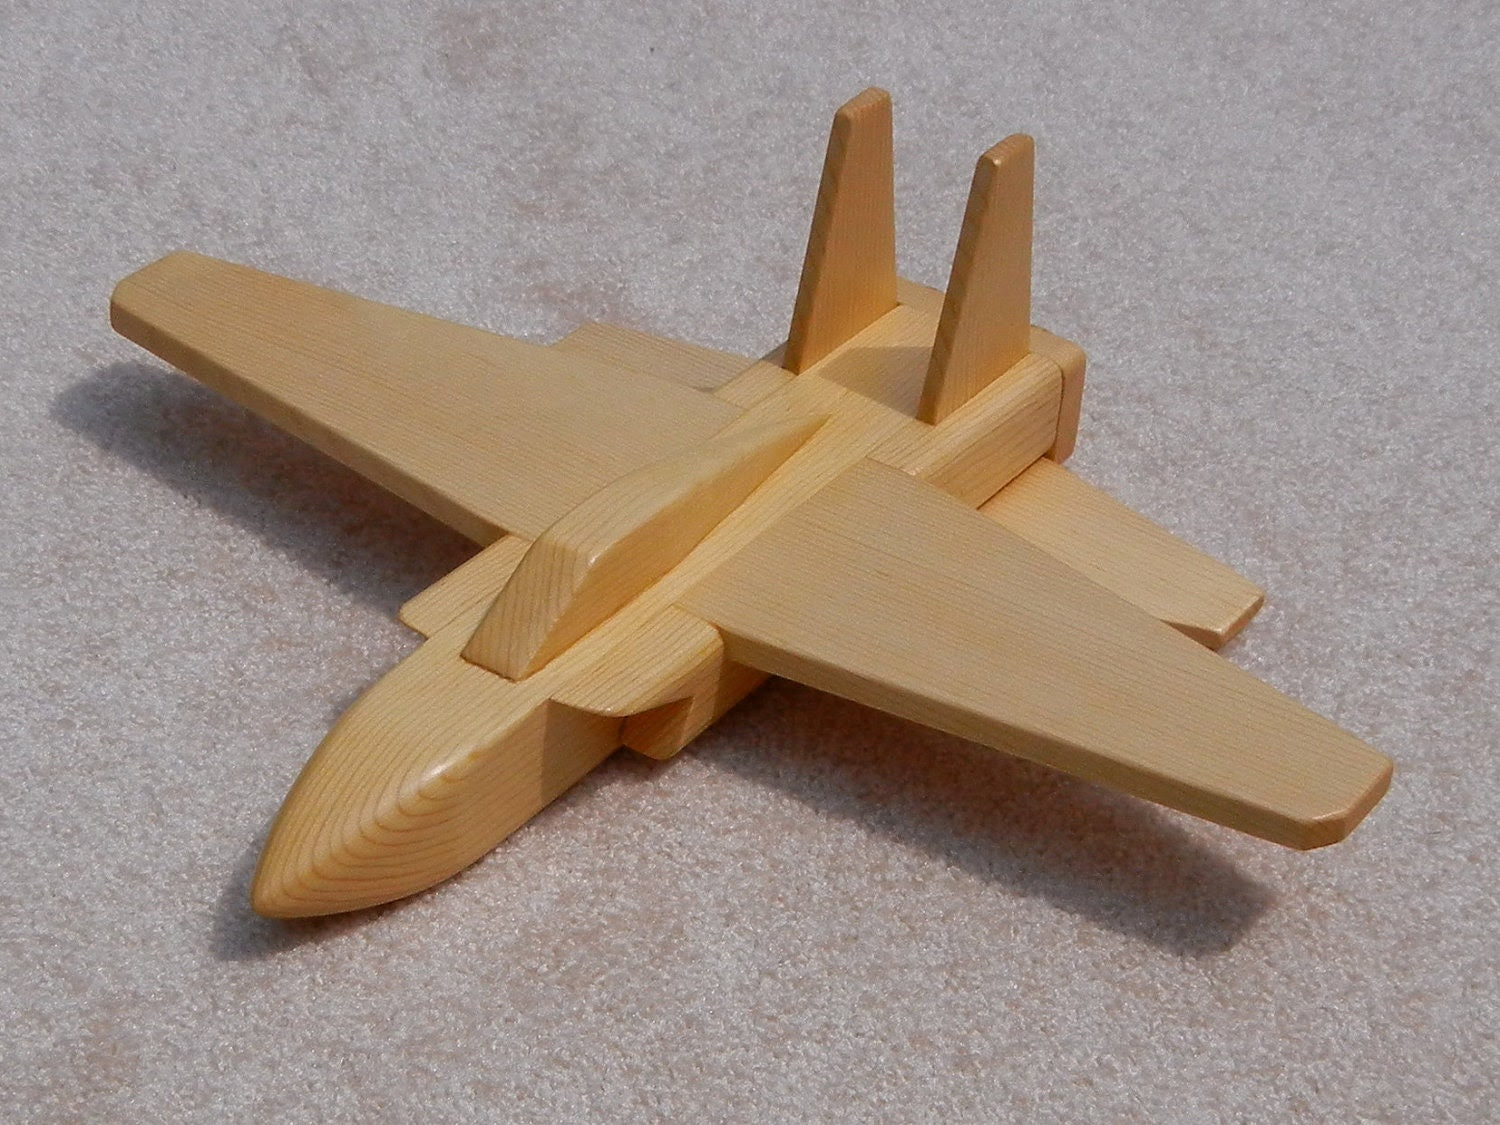 wooden toy jet planes